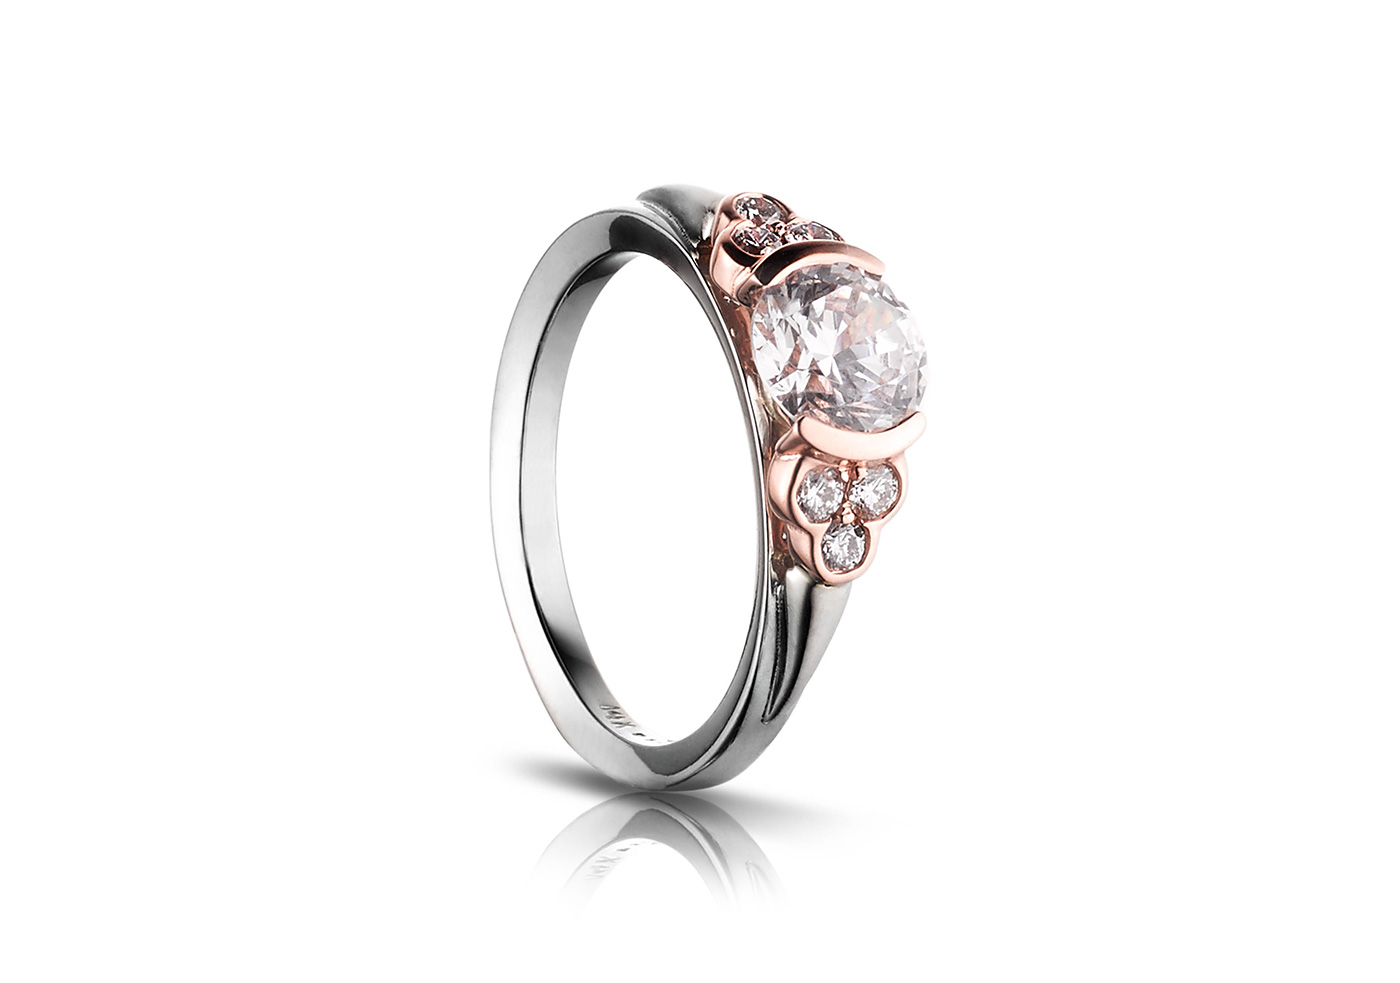 Engagement Ring By Sholdt